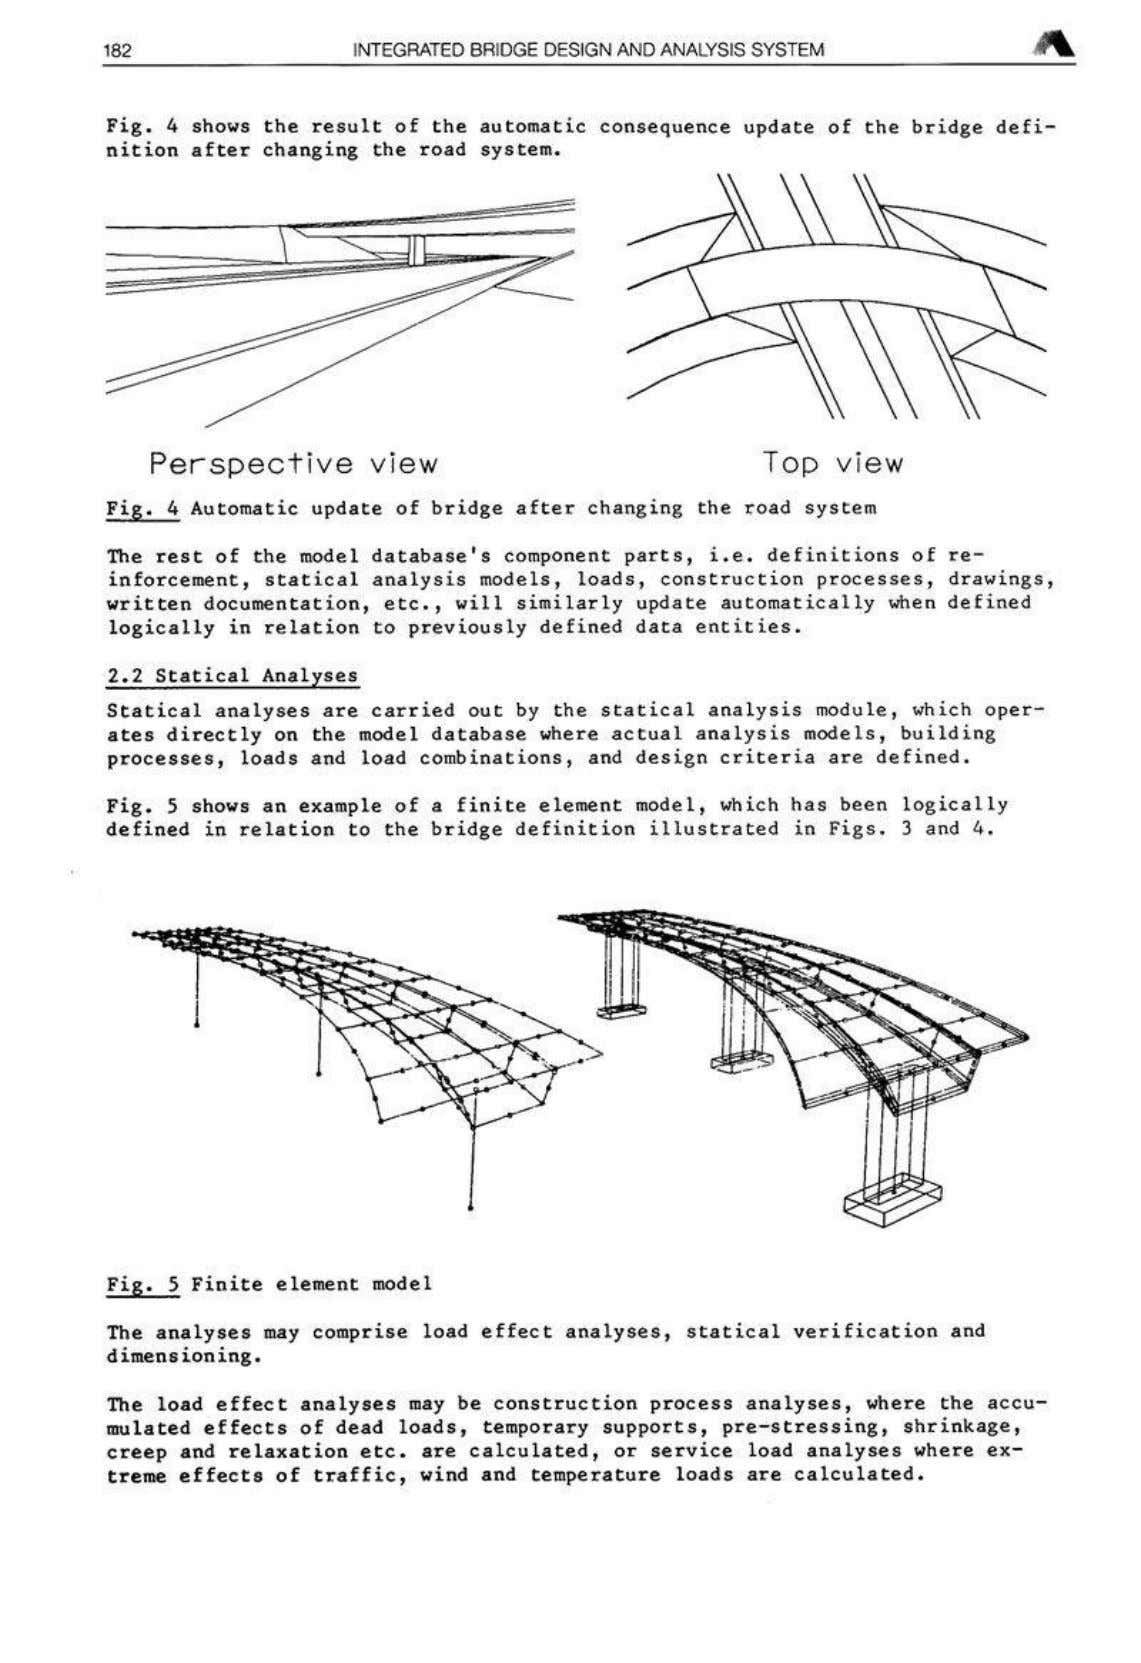 #1 182 INTEGRATED BRIDGE DESIGN AND ANALYSIS SYSTEM Fig. 4 shows the result of the